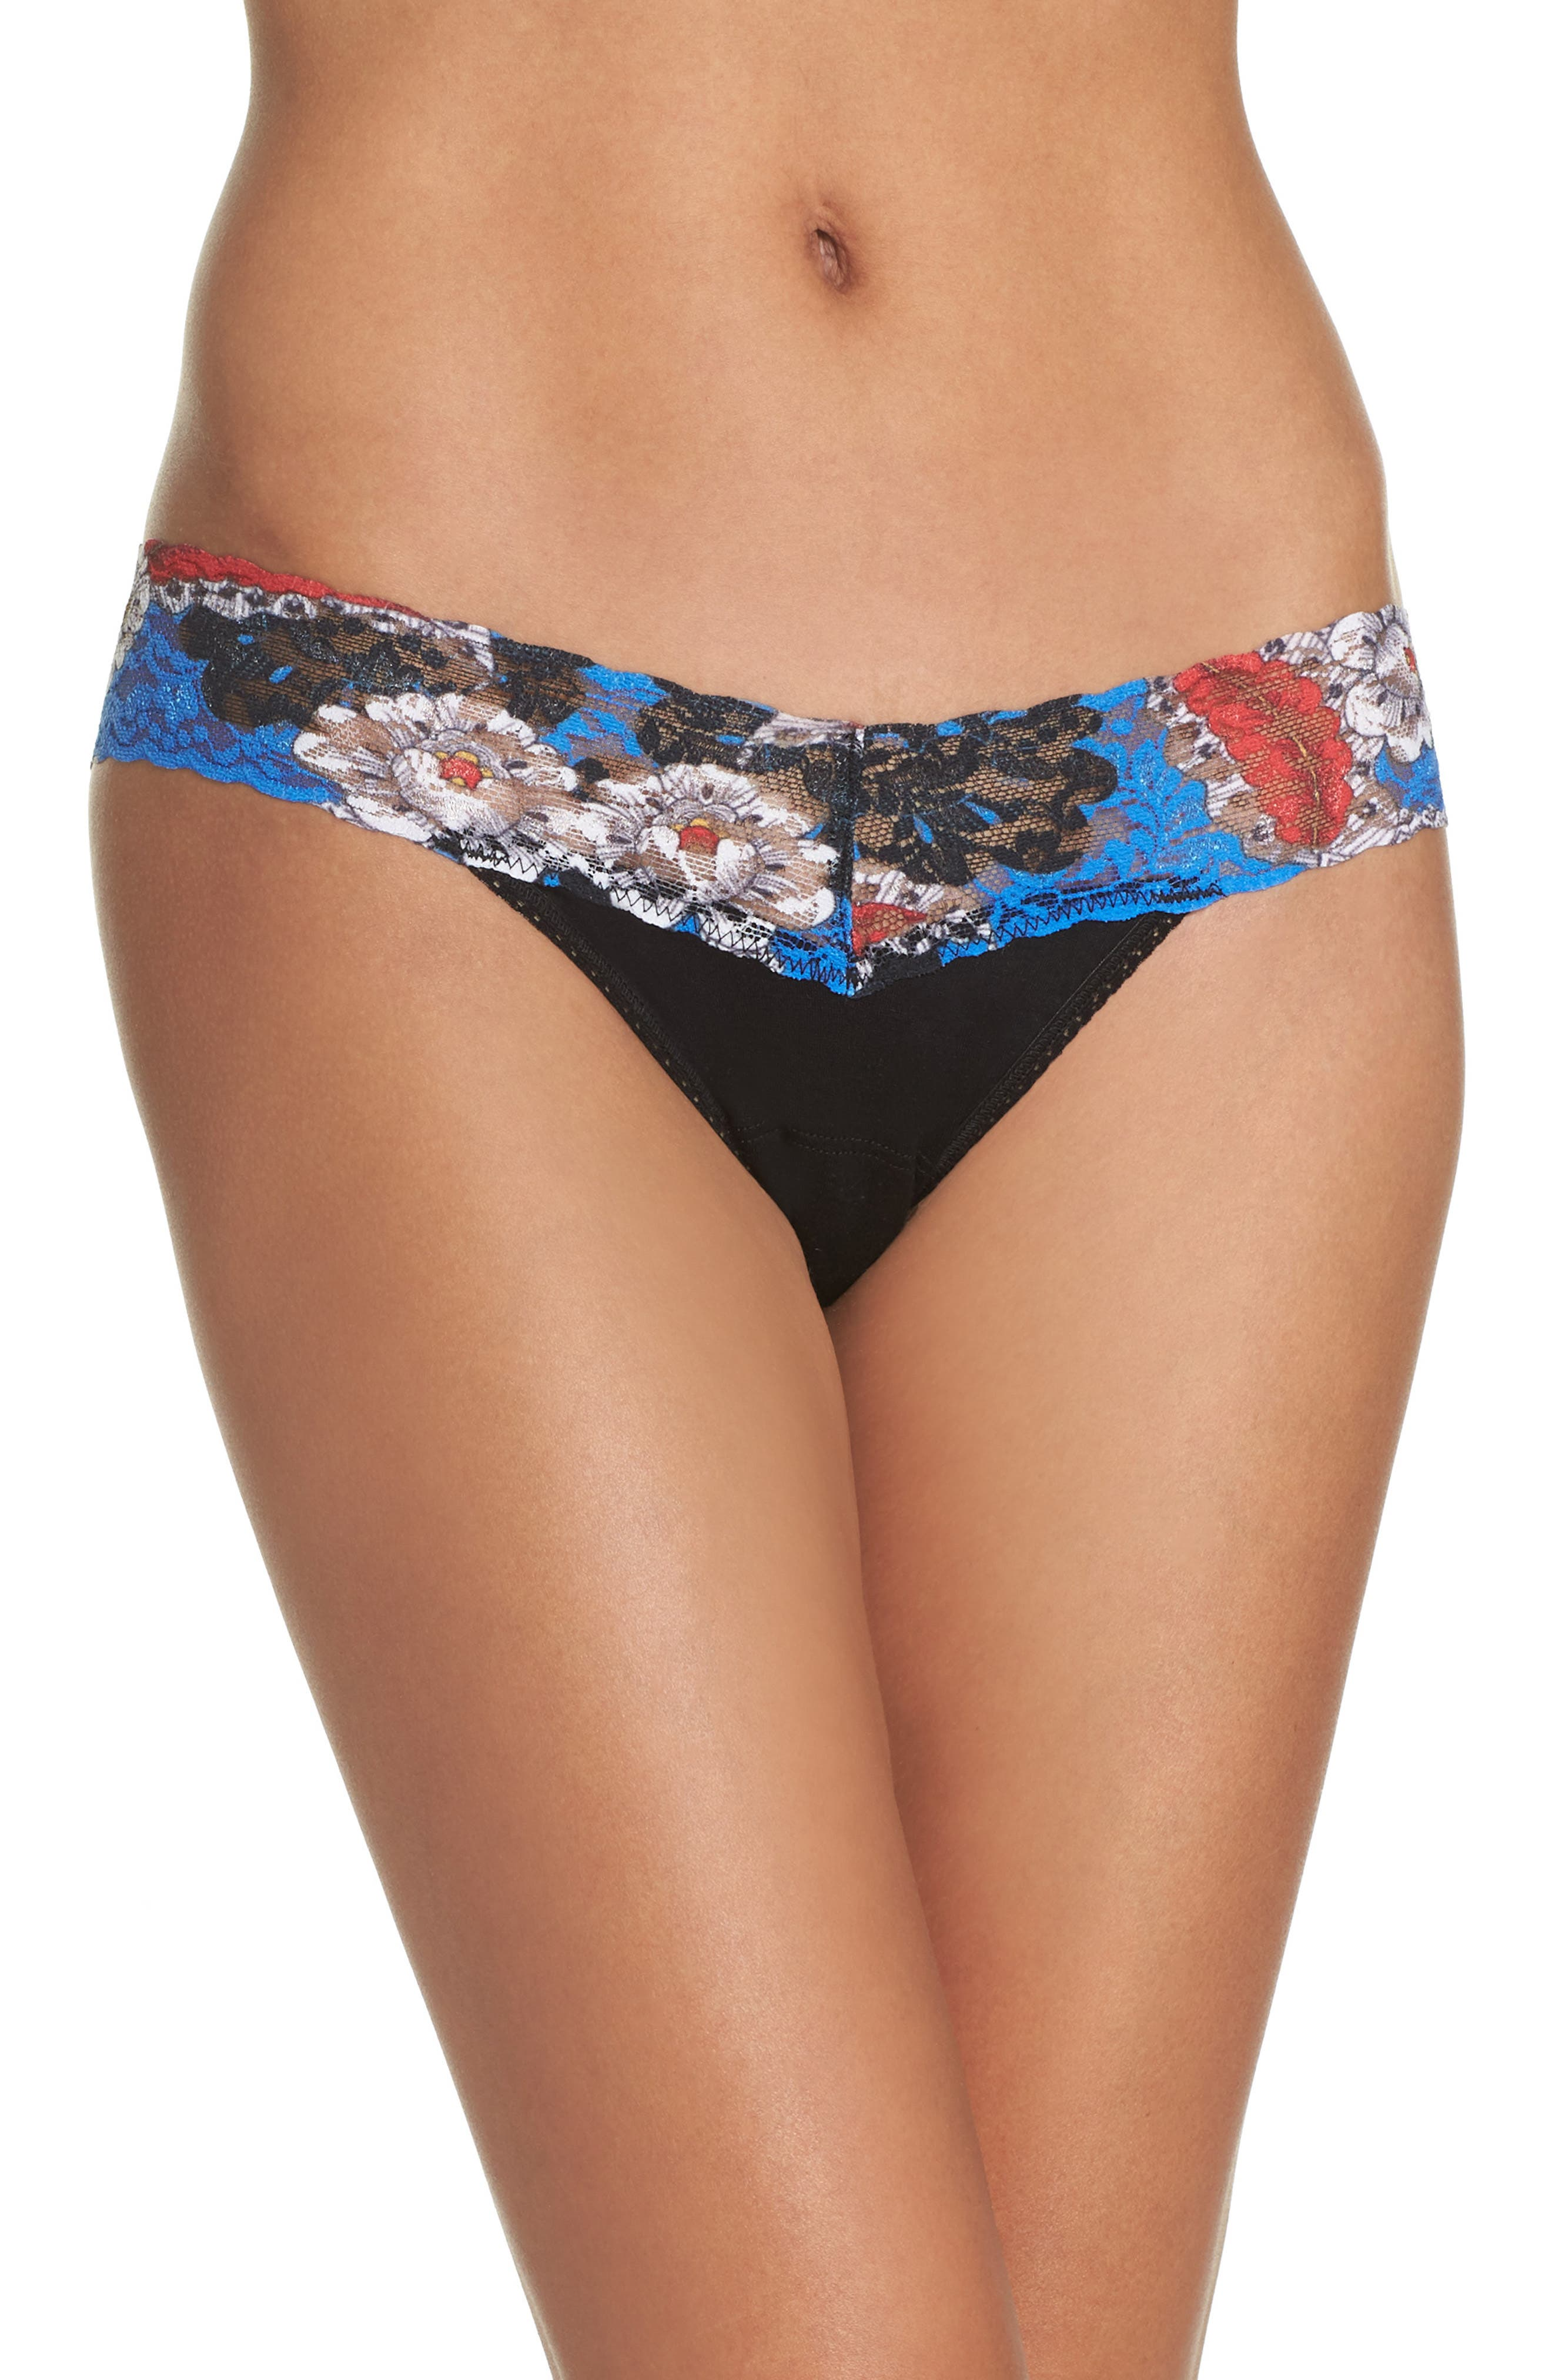 Alternate Image 1 Selected - Hanky Panky Mid Rise Modal Thong with Lace Trim